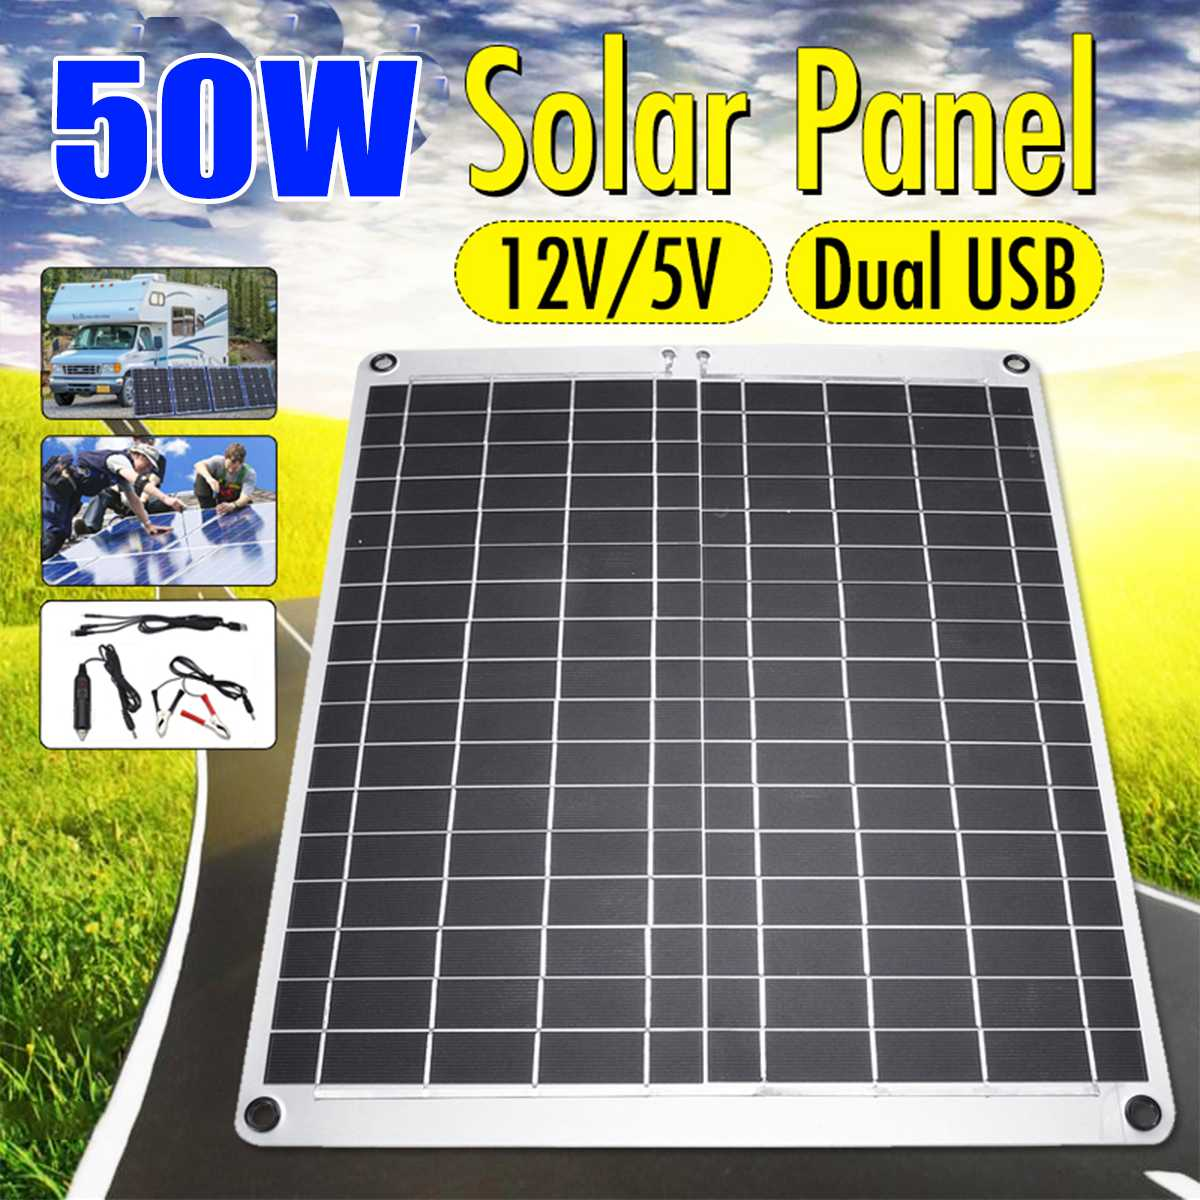 50W Solar Panel Dual USB 12V/5VMonocrystaline Flexible Solar Cells Waterproof Solar Charger For Car RV Yacht Battery Boat